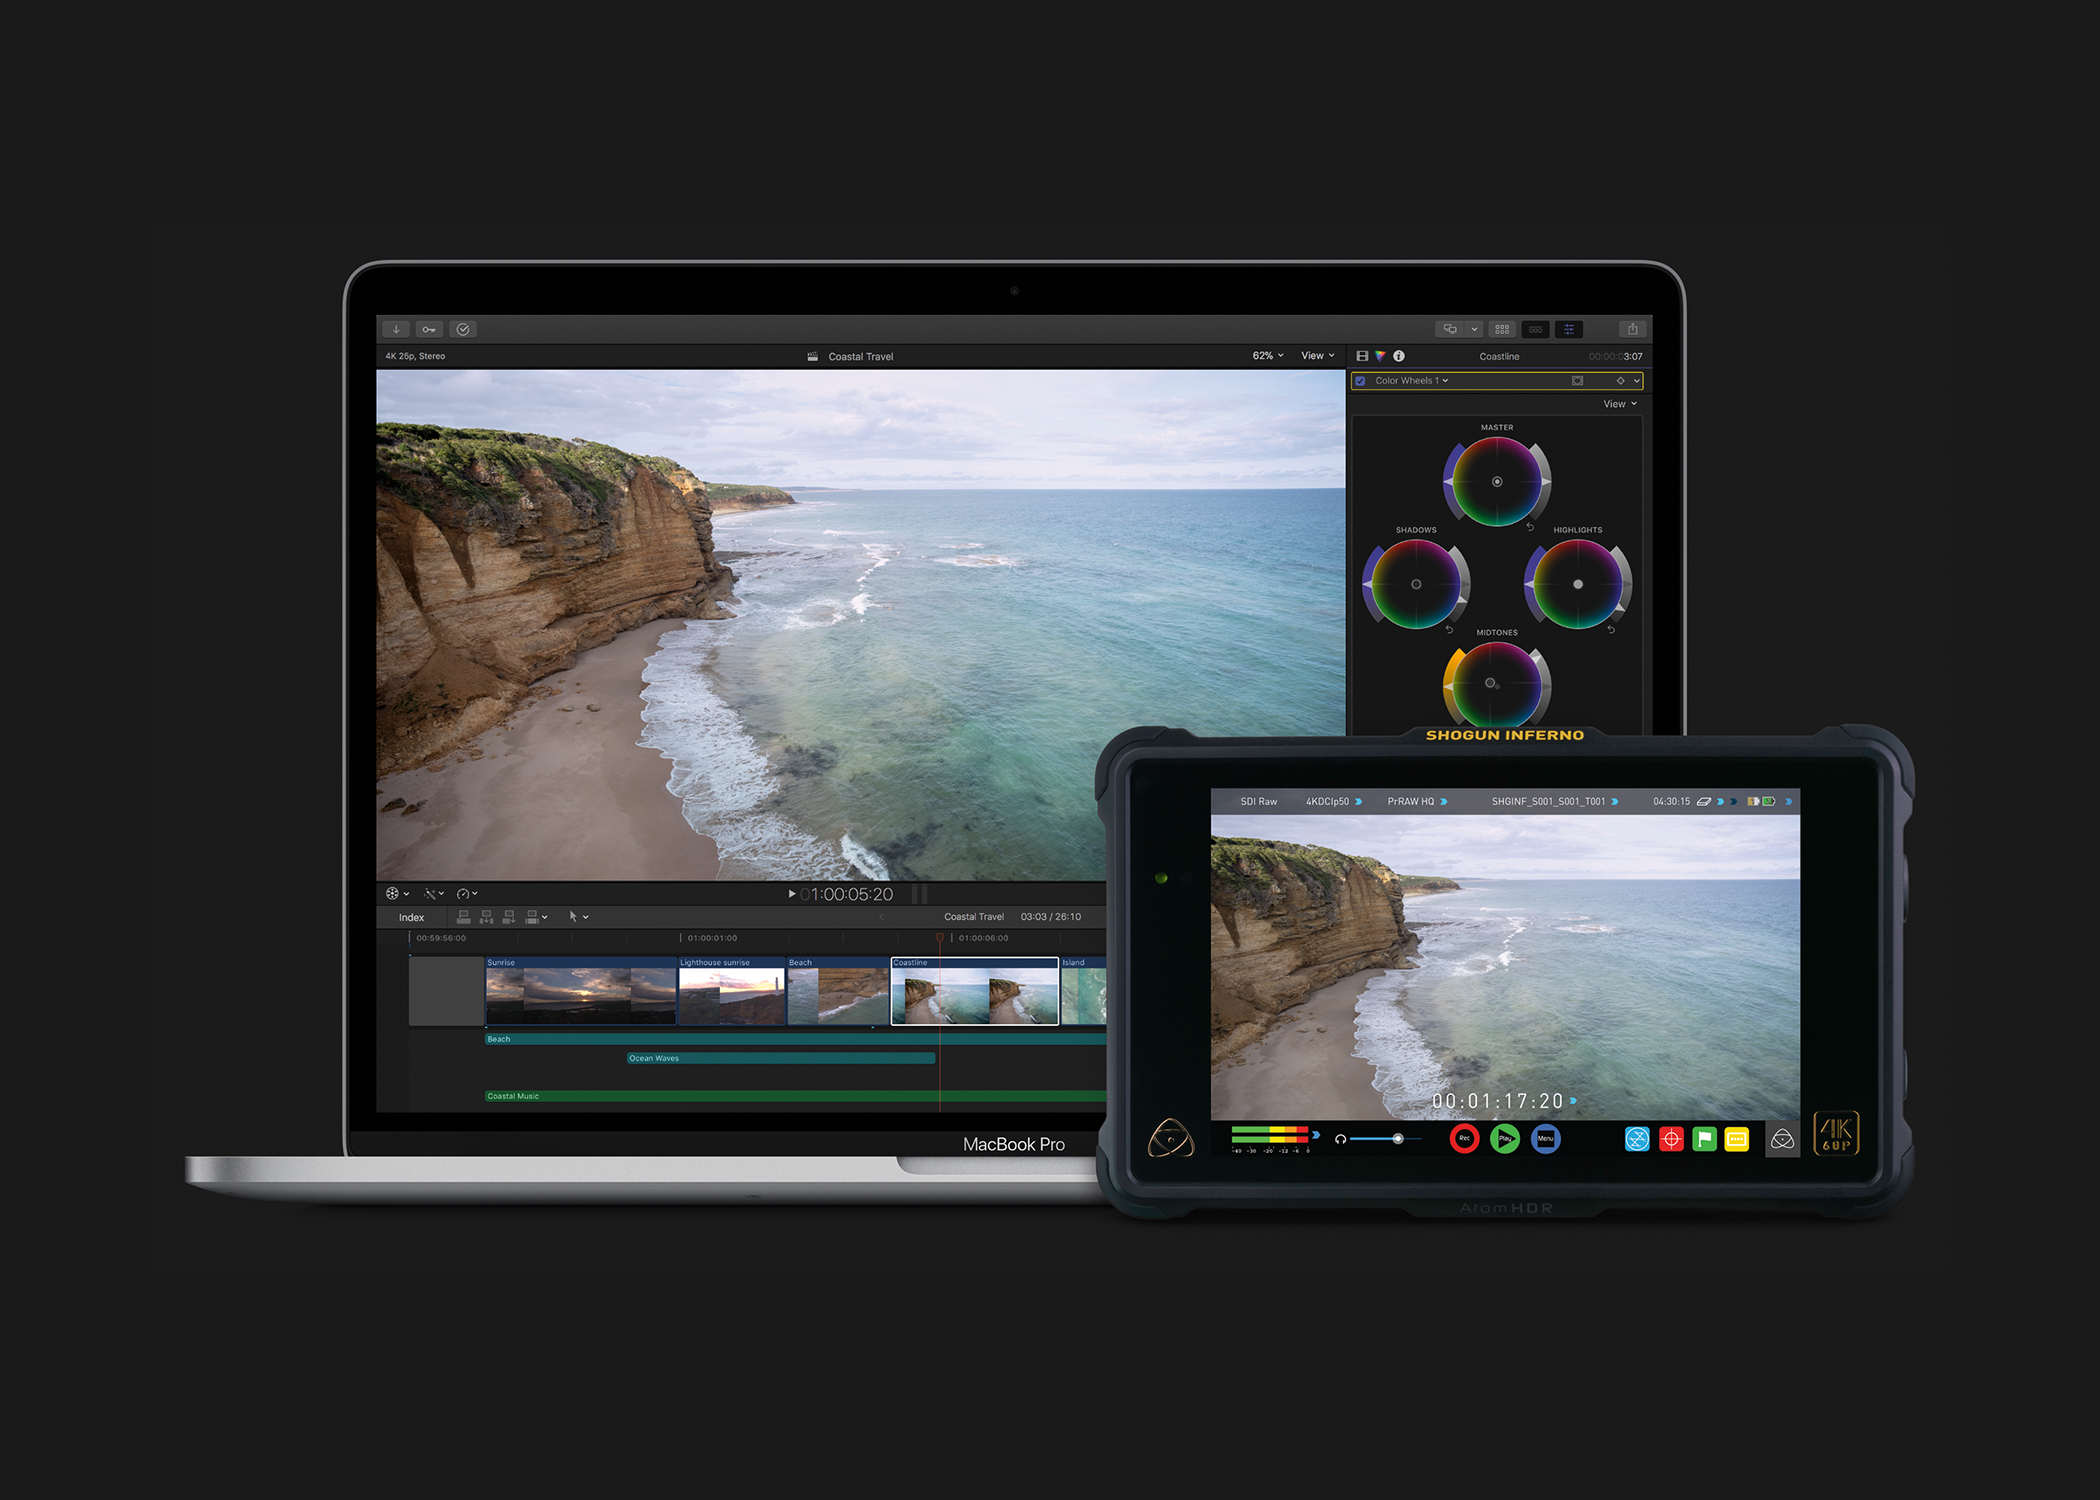 DJI Updates Zenmuse X7 Camera With Support For Apple ProRes RAW